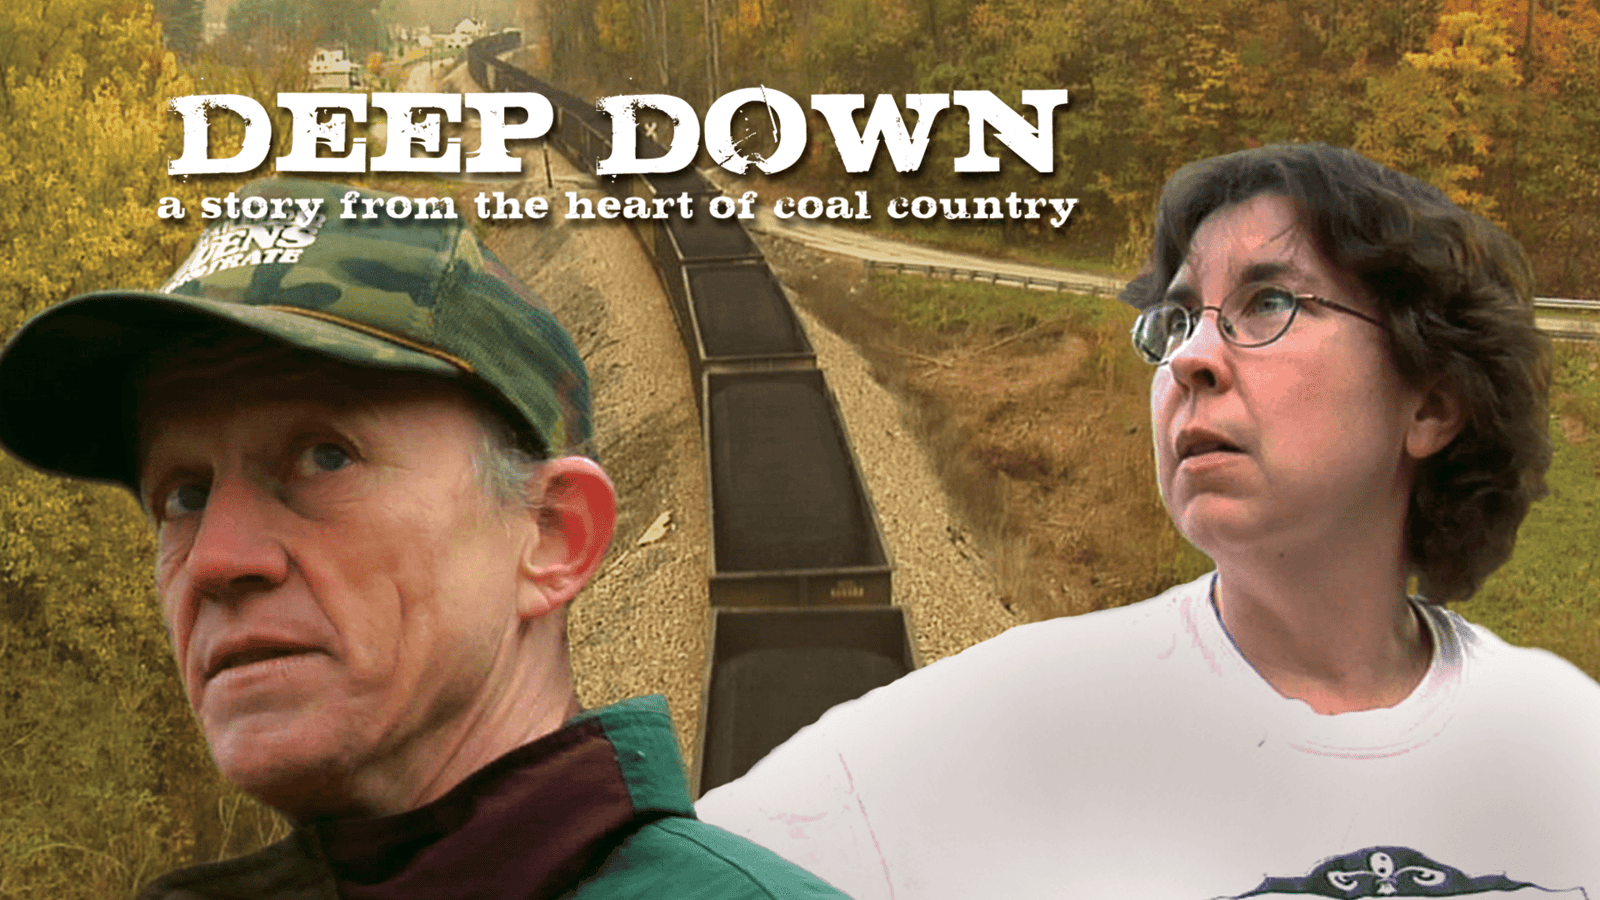 Deep Down - A Story From the Heart of Coal Country